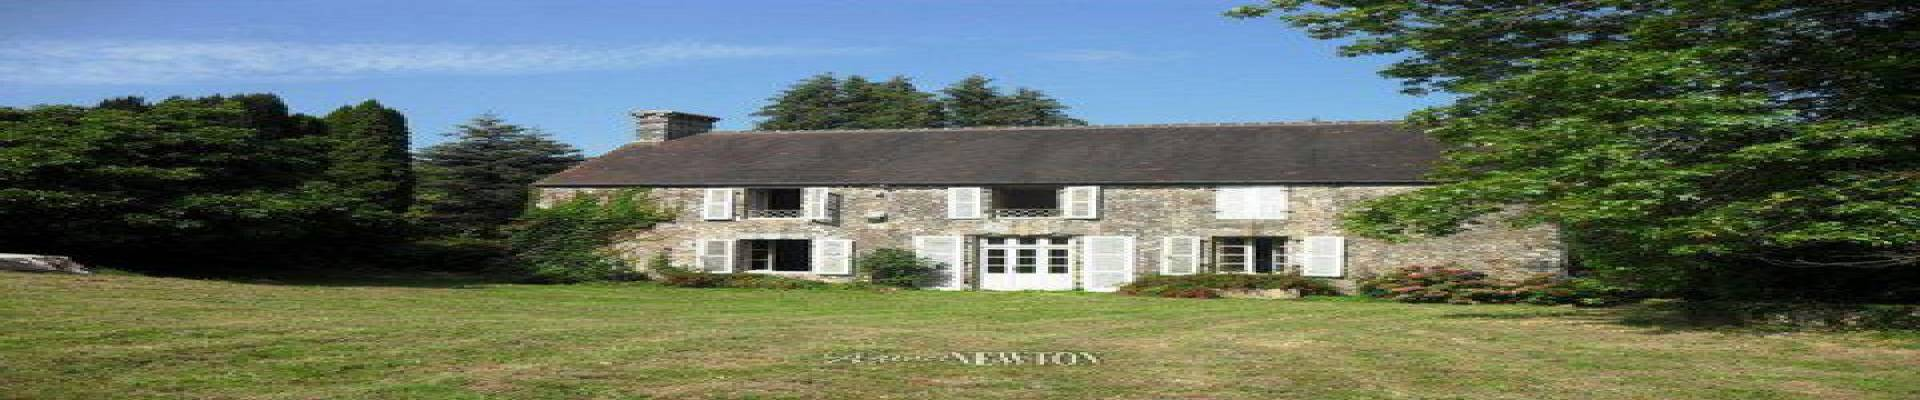 France Basse-Normandie ST HILAIRE DU HARCOUET 50640, 9 Bedrooms Bedrooms, ,Villa,For sale,7381